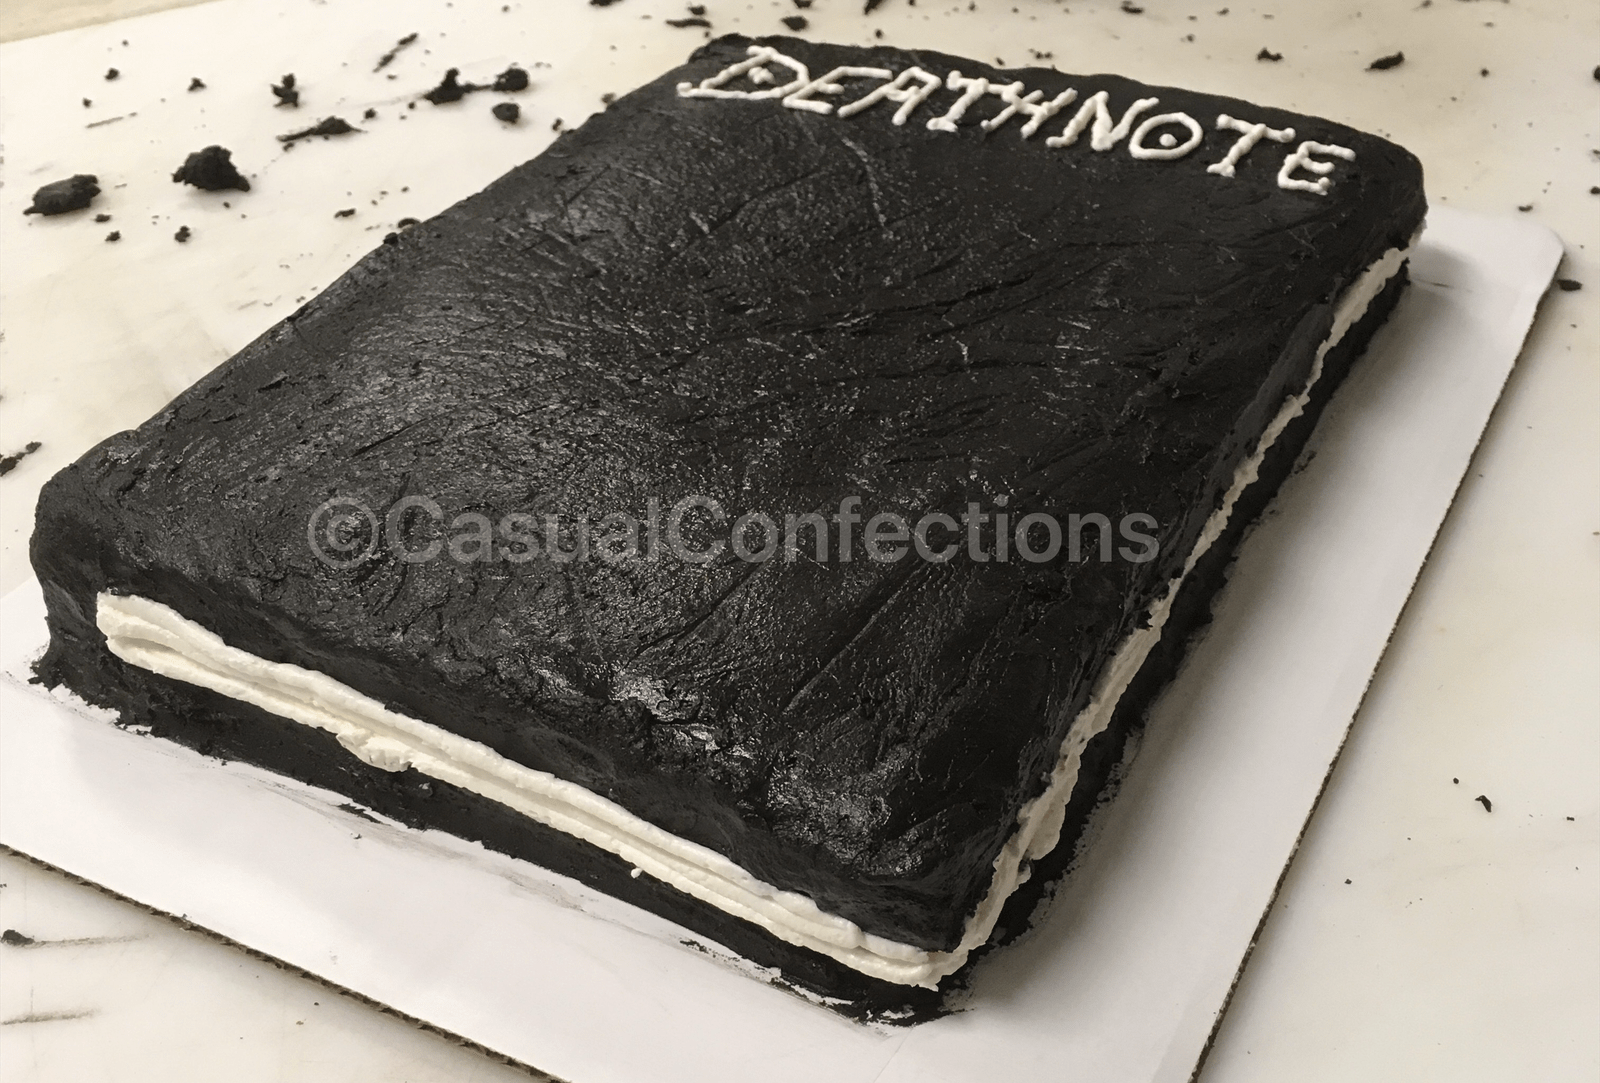 Death Note cake side view